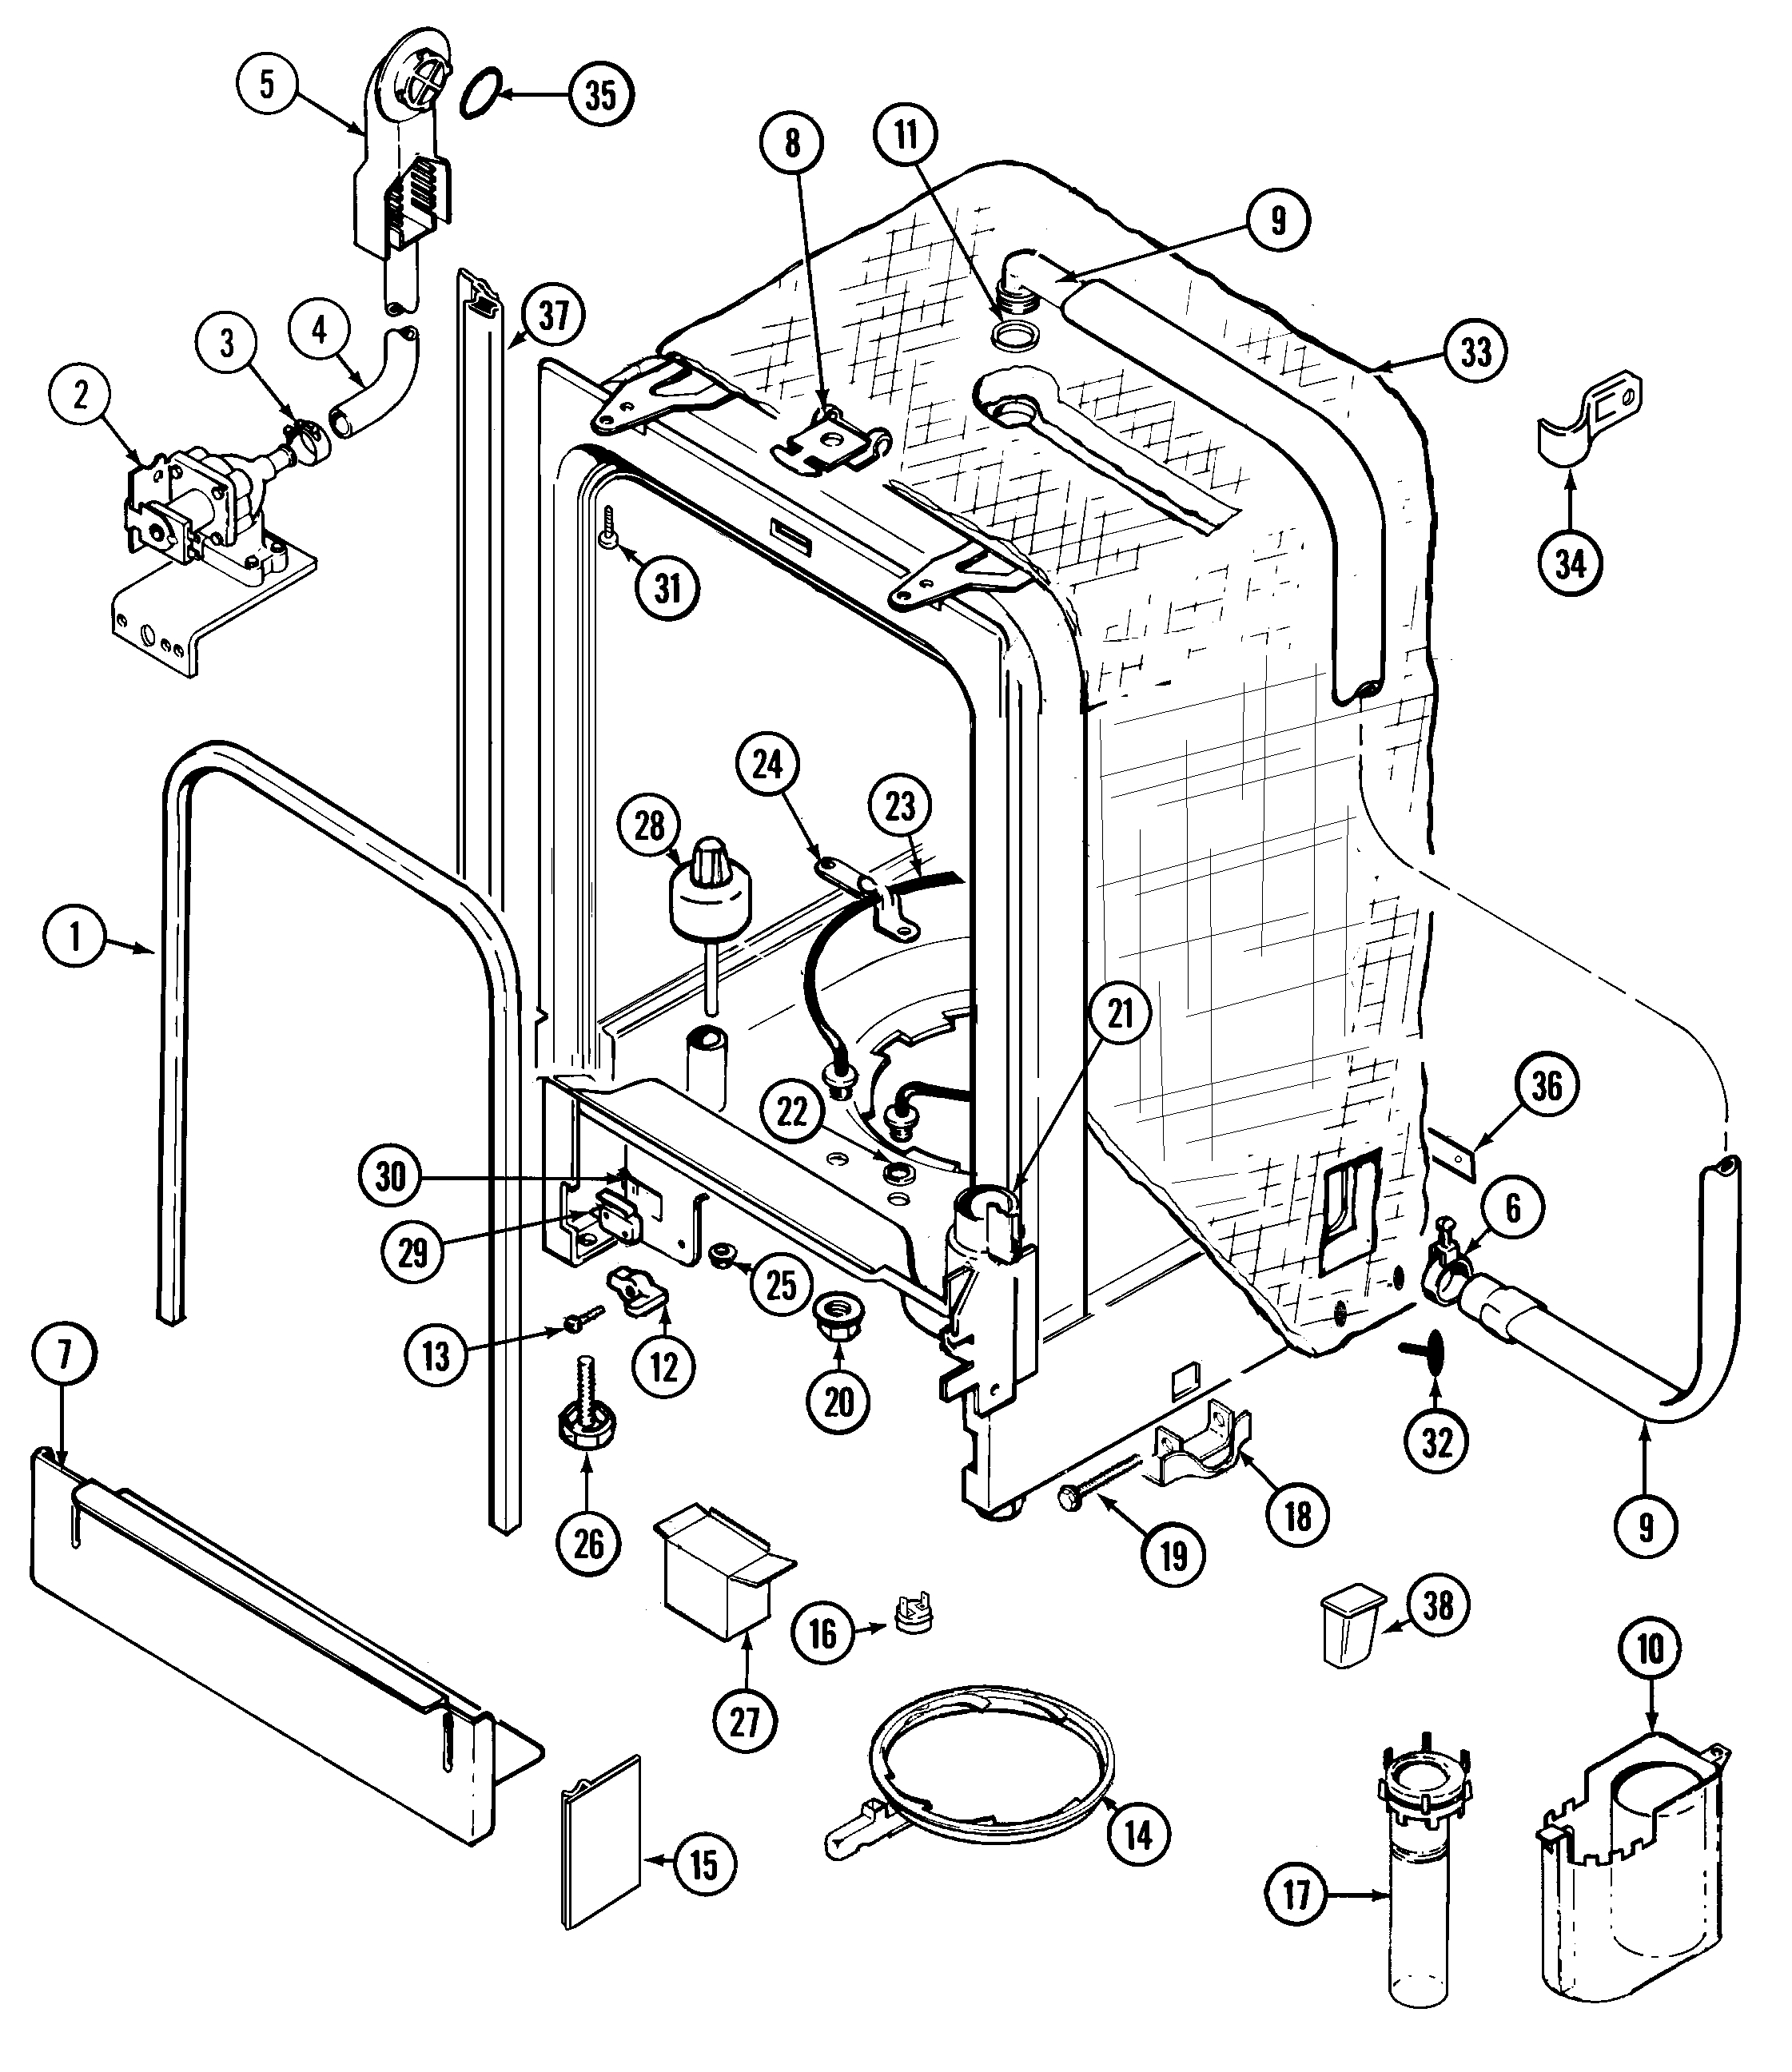 whirlpool dishwasher wiring diagram collection